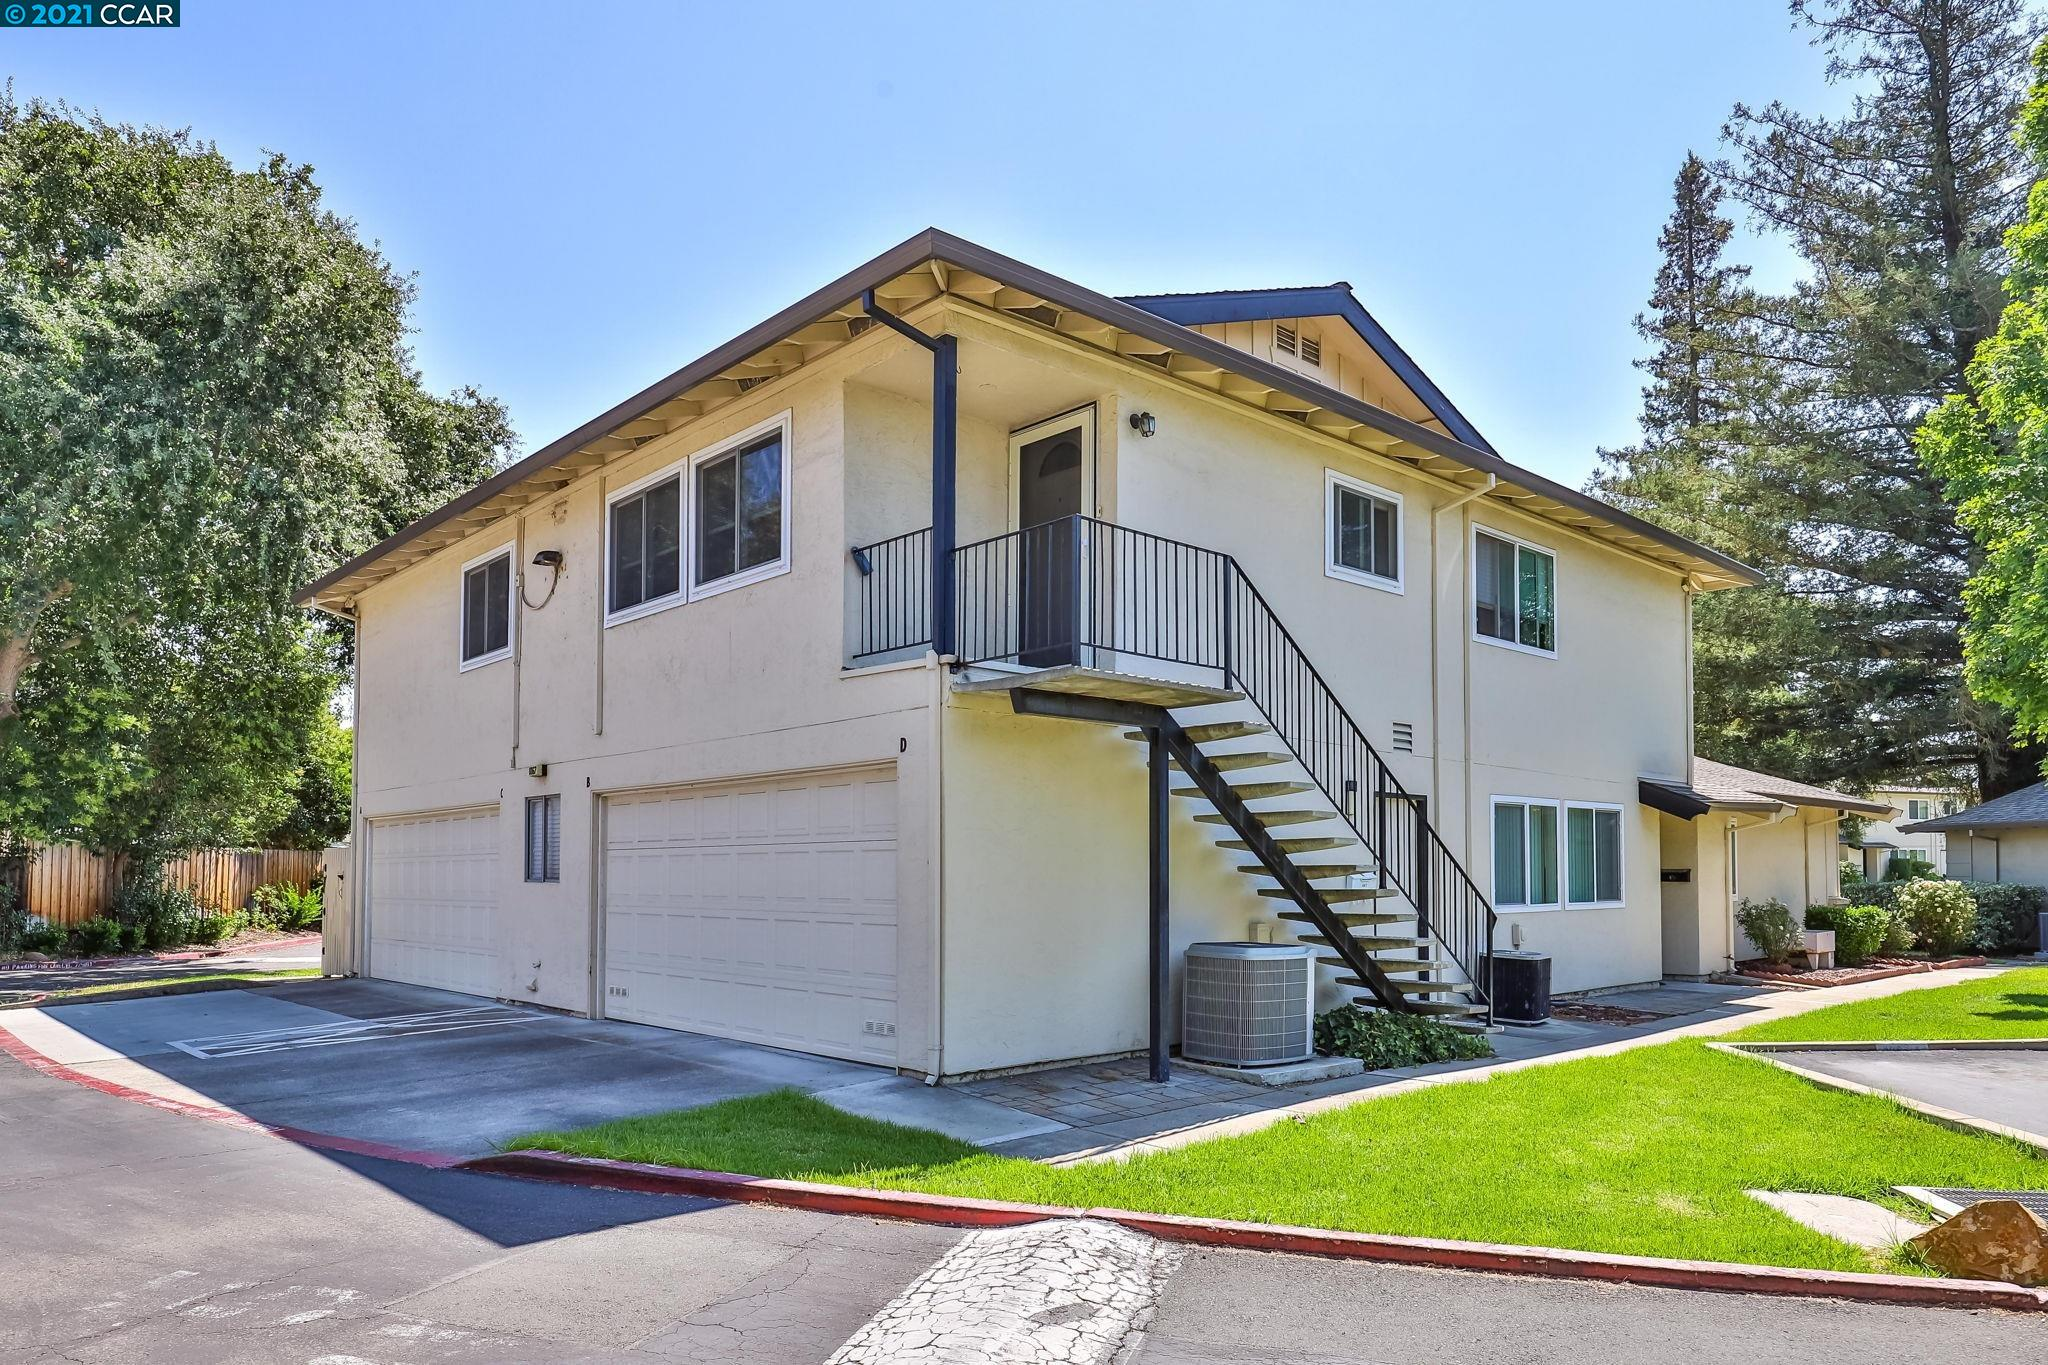 Great location convenient to shopping, restaurants, transportation and walking trails! This 2 bedroom, 1 bath condo has just been freshly painted throughout and new carpet installed in both bedrooms. The unit features central heat/air, shared garage parking with laundry and 1 deeded parking space outside. Beautiful grounds with a community pool.